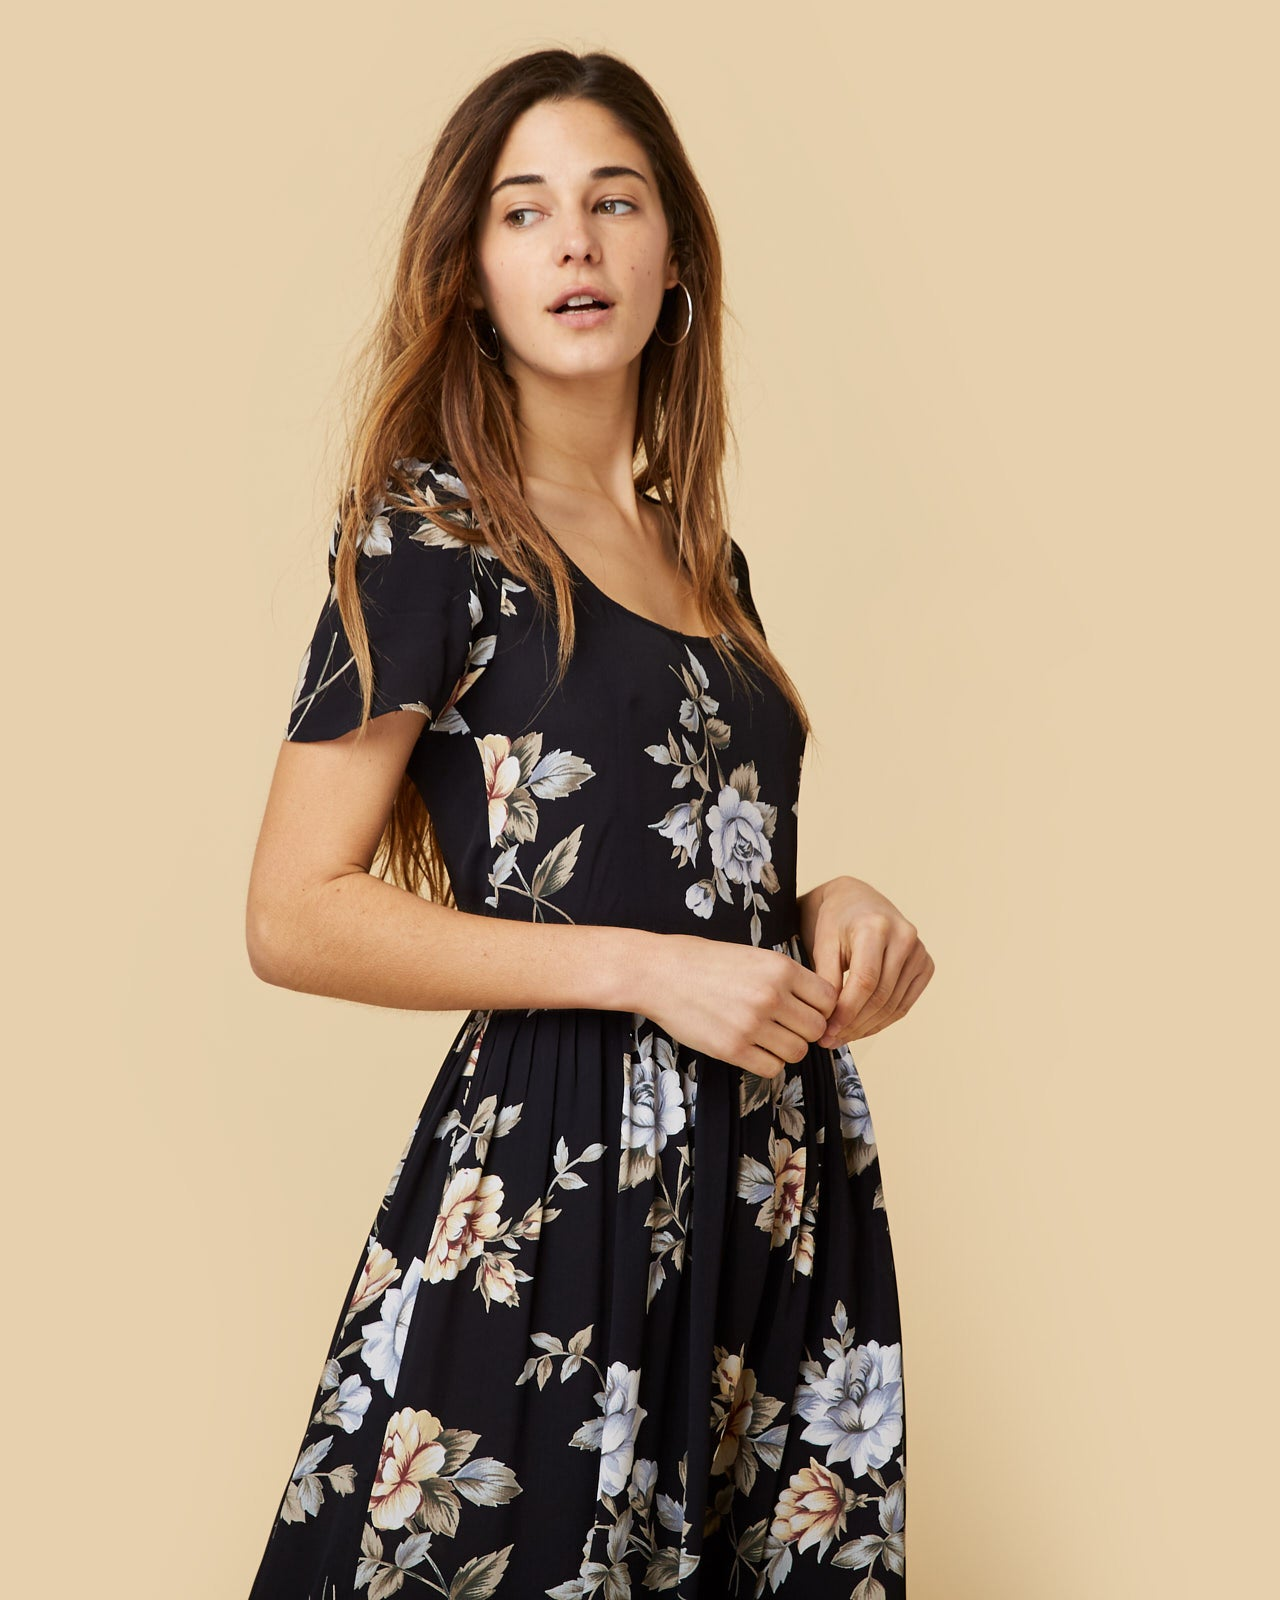 The Scarlet Dress | Large Black Floral